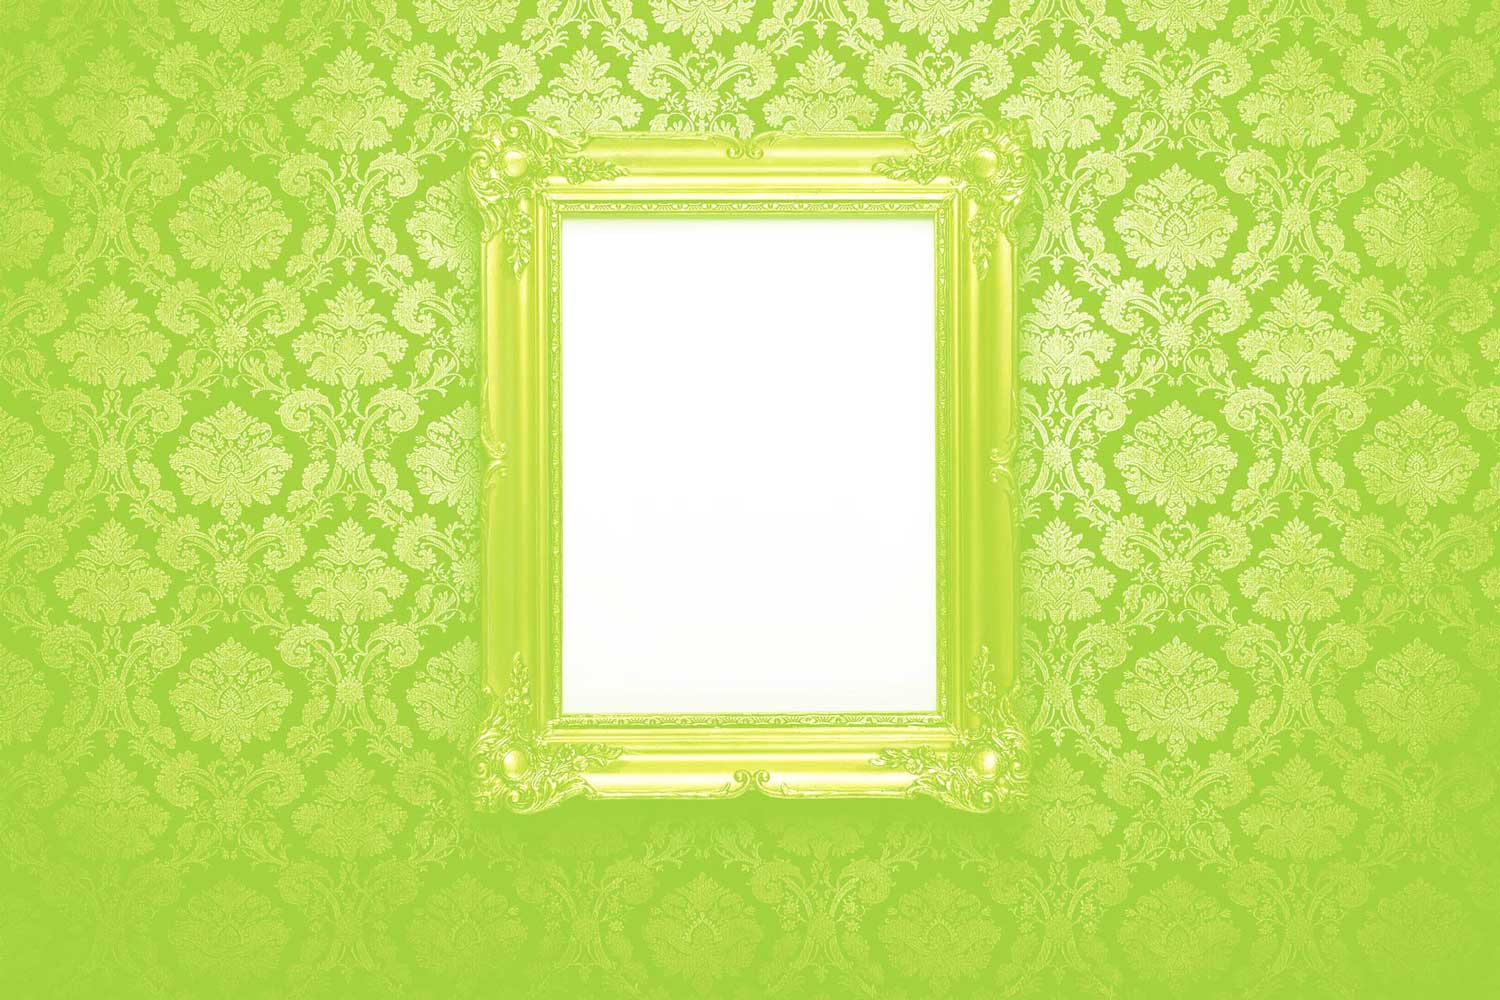 green ornate wall with green frame